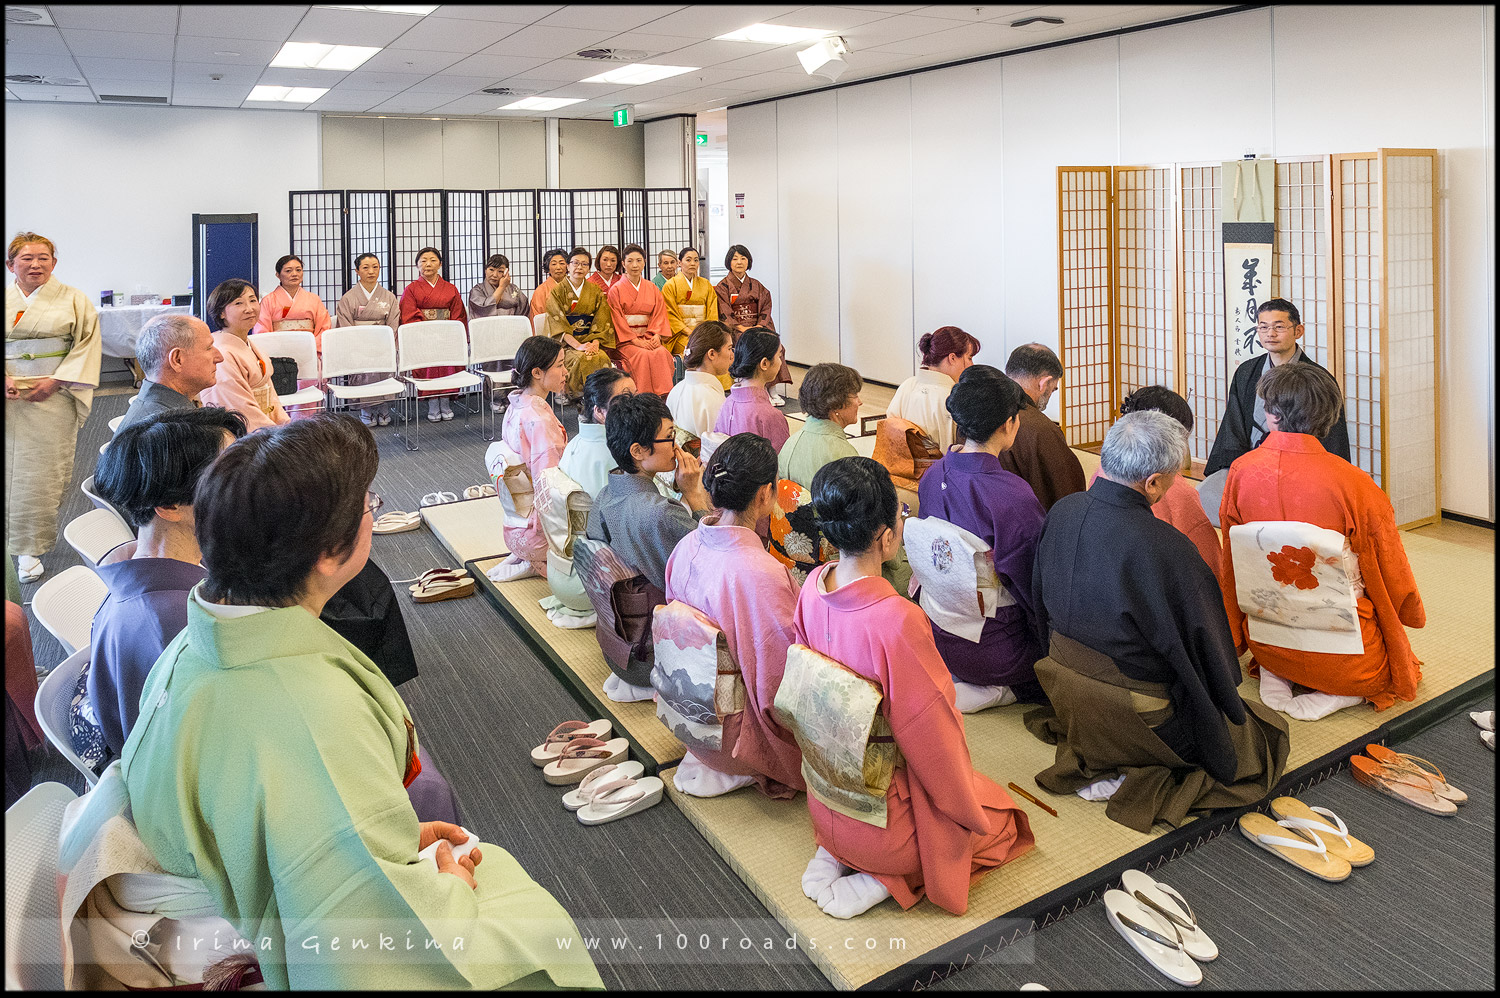 On 6th and 7th of July 2018, we had Gyotei-sensei Seminar in Sydney